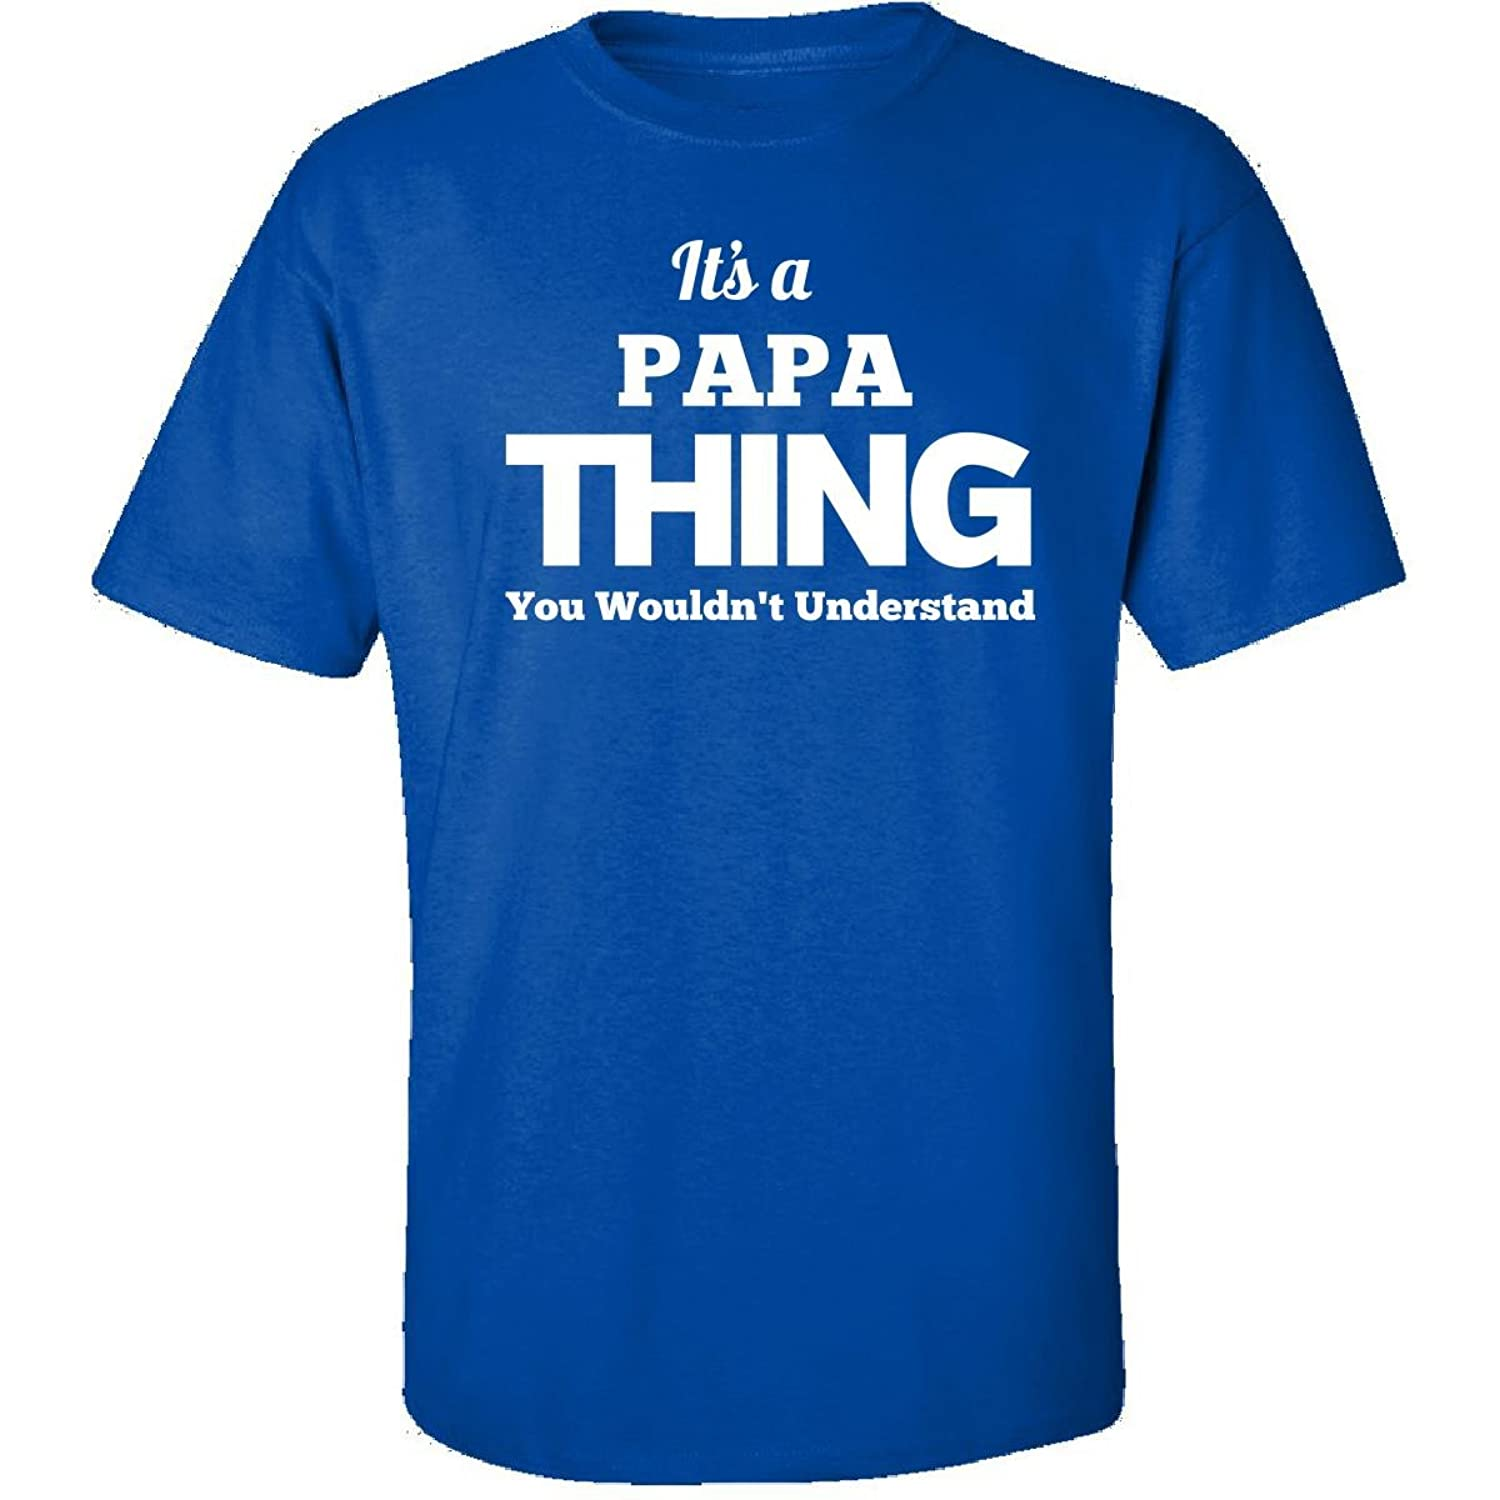 Its A Papa Thing You Wouldnt Understand - Adult Shirt